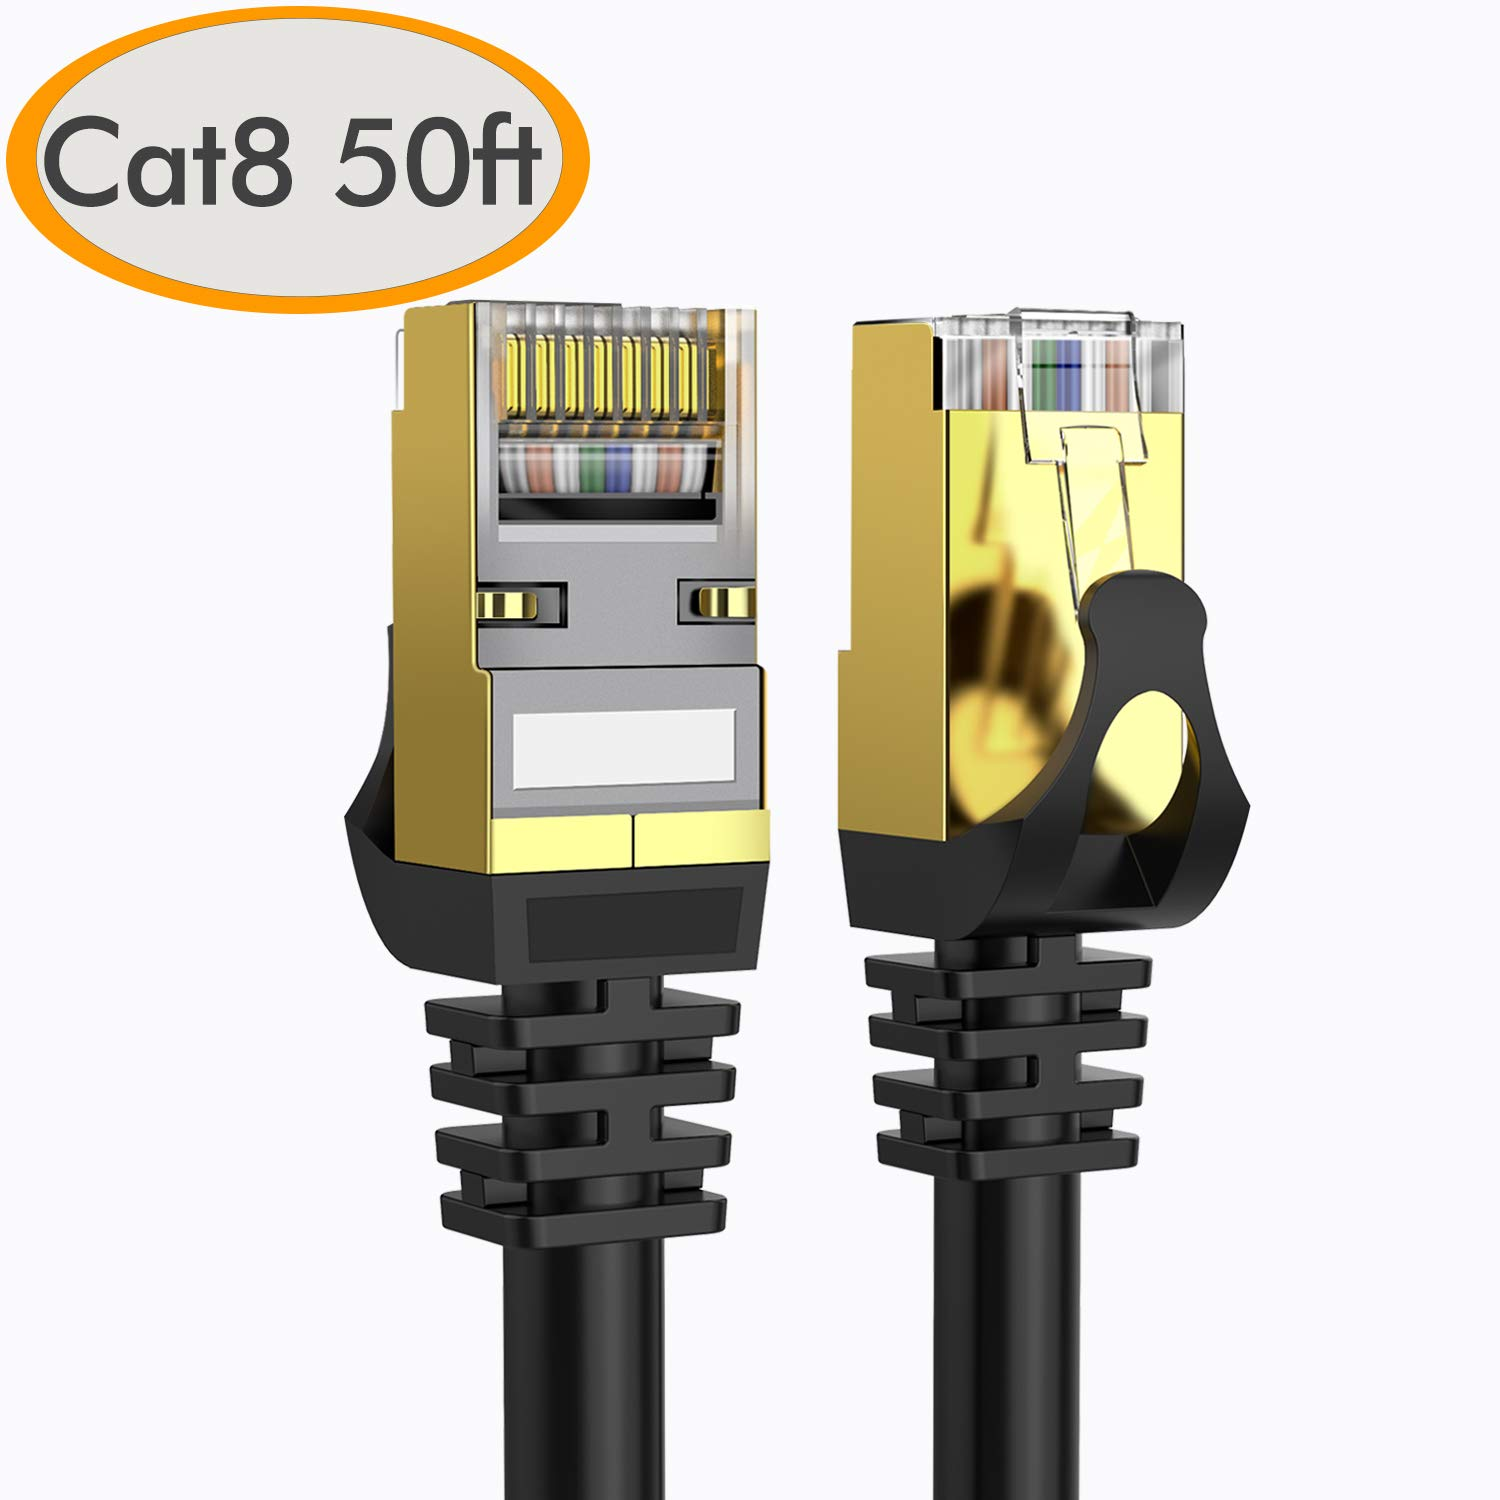 Cat 8 Ethernet Cable 50 ft Shielded, 26AWG Lastest 40Gbps 2000Mhz SFTP Patch Cord, Heavy Duty High Speed Cat8 LAN Network RJ45 Cable- in Wall, Outdoor, Weatherproof Rated for Router, Modem, Gaming by Dacrown